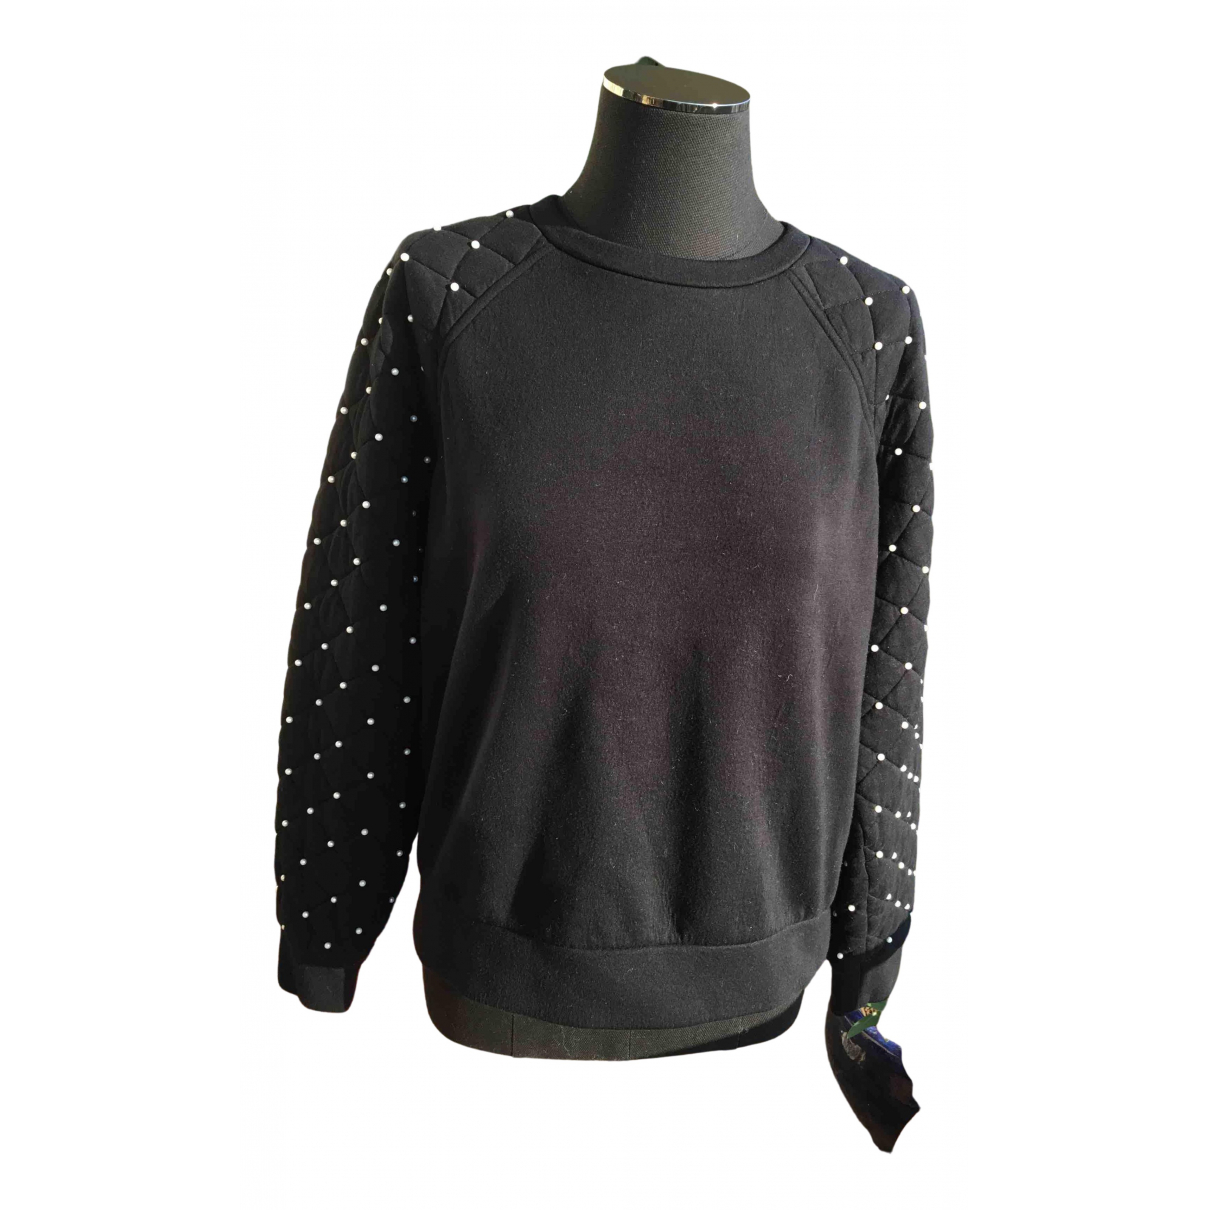 Maje \N Black Knitwear for Women 2 0-5